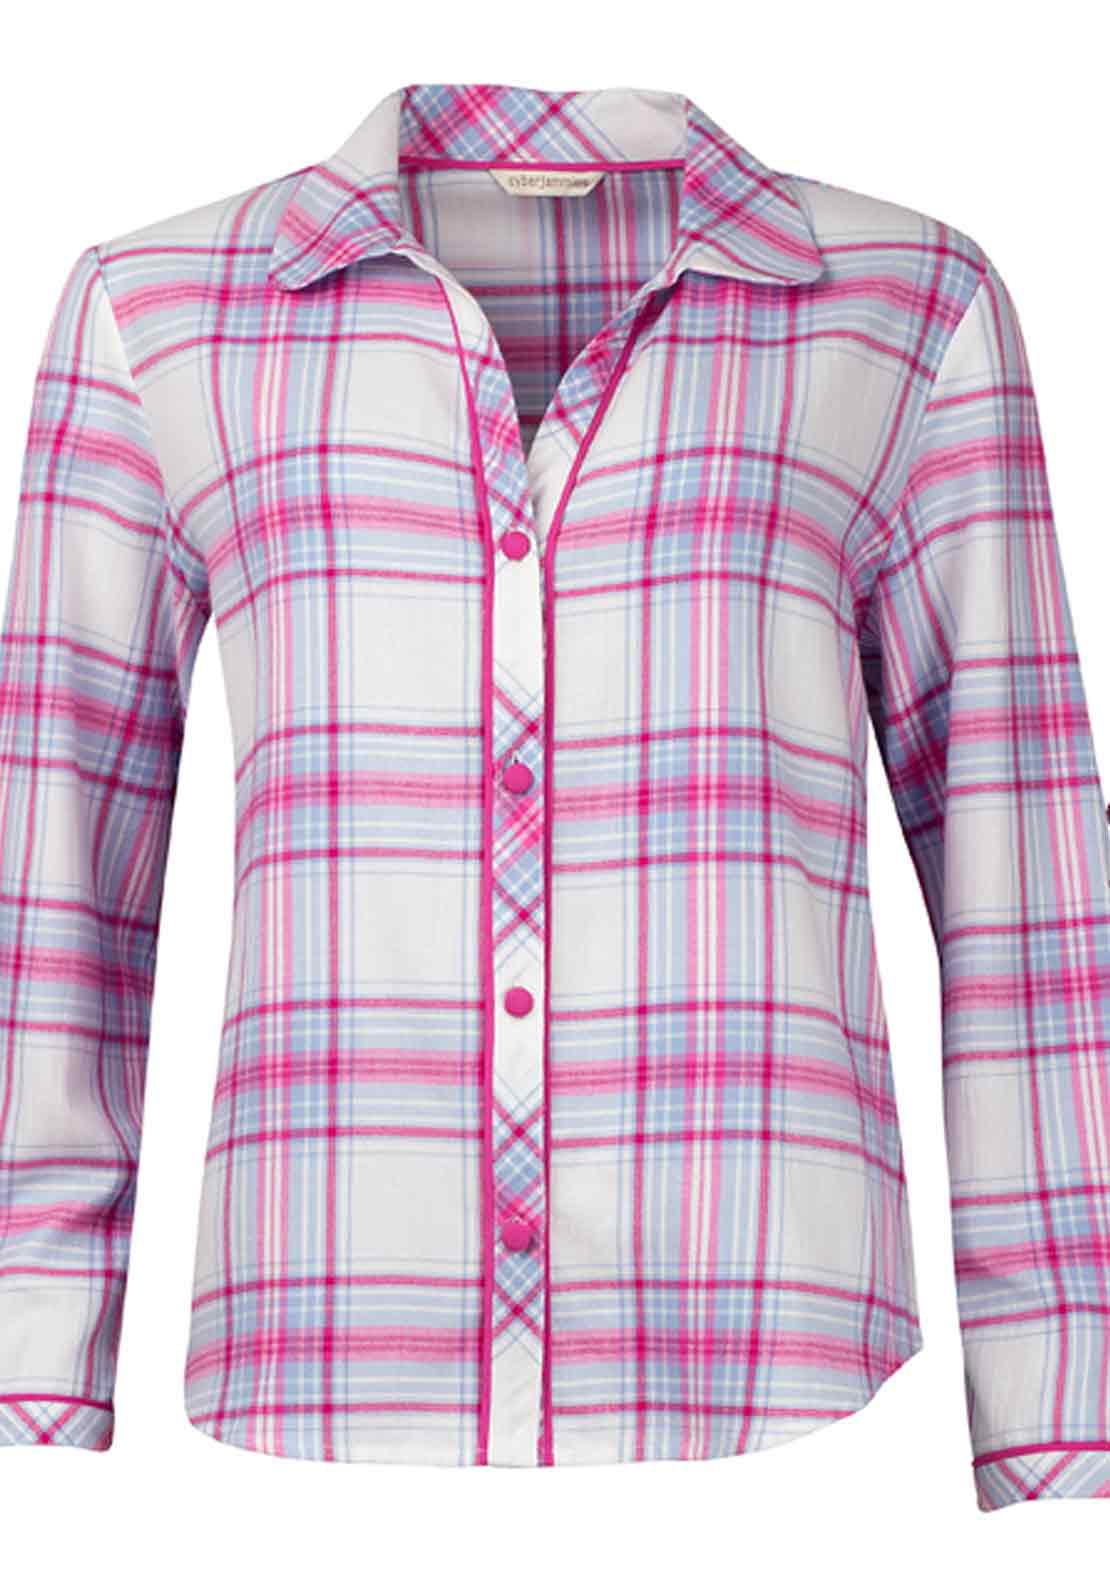 Cyberjammies Floral Fun Checked Brushed Cotton Pyjama Top, Pink and Blue